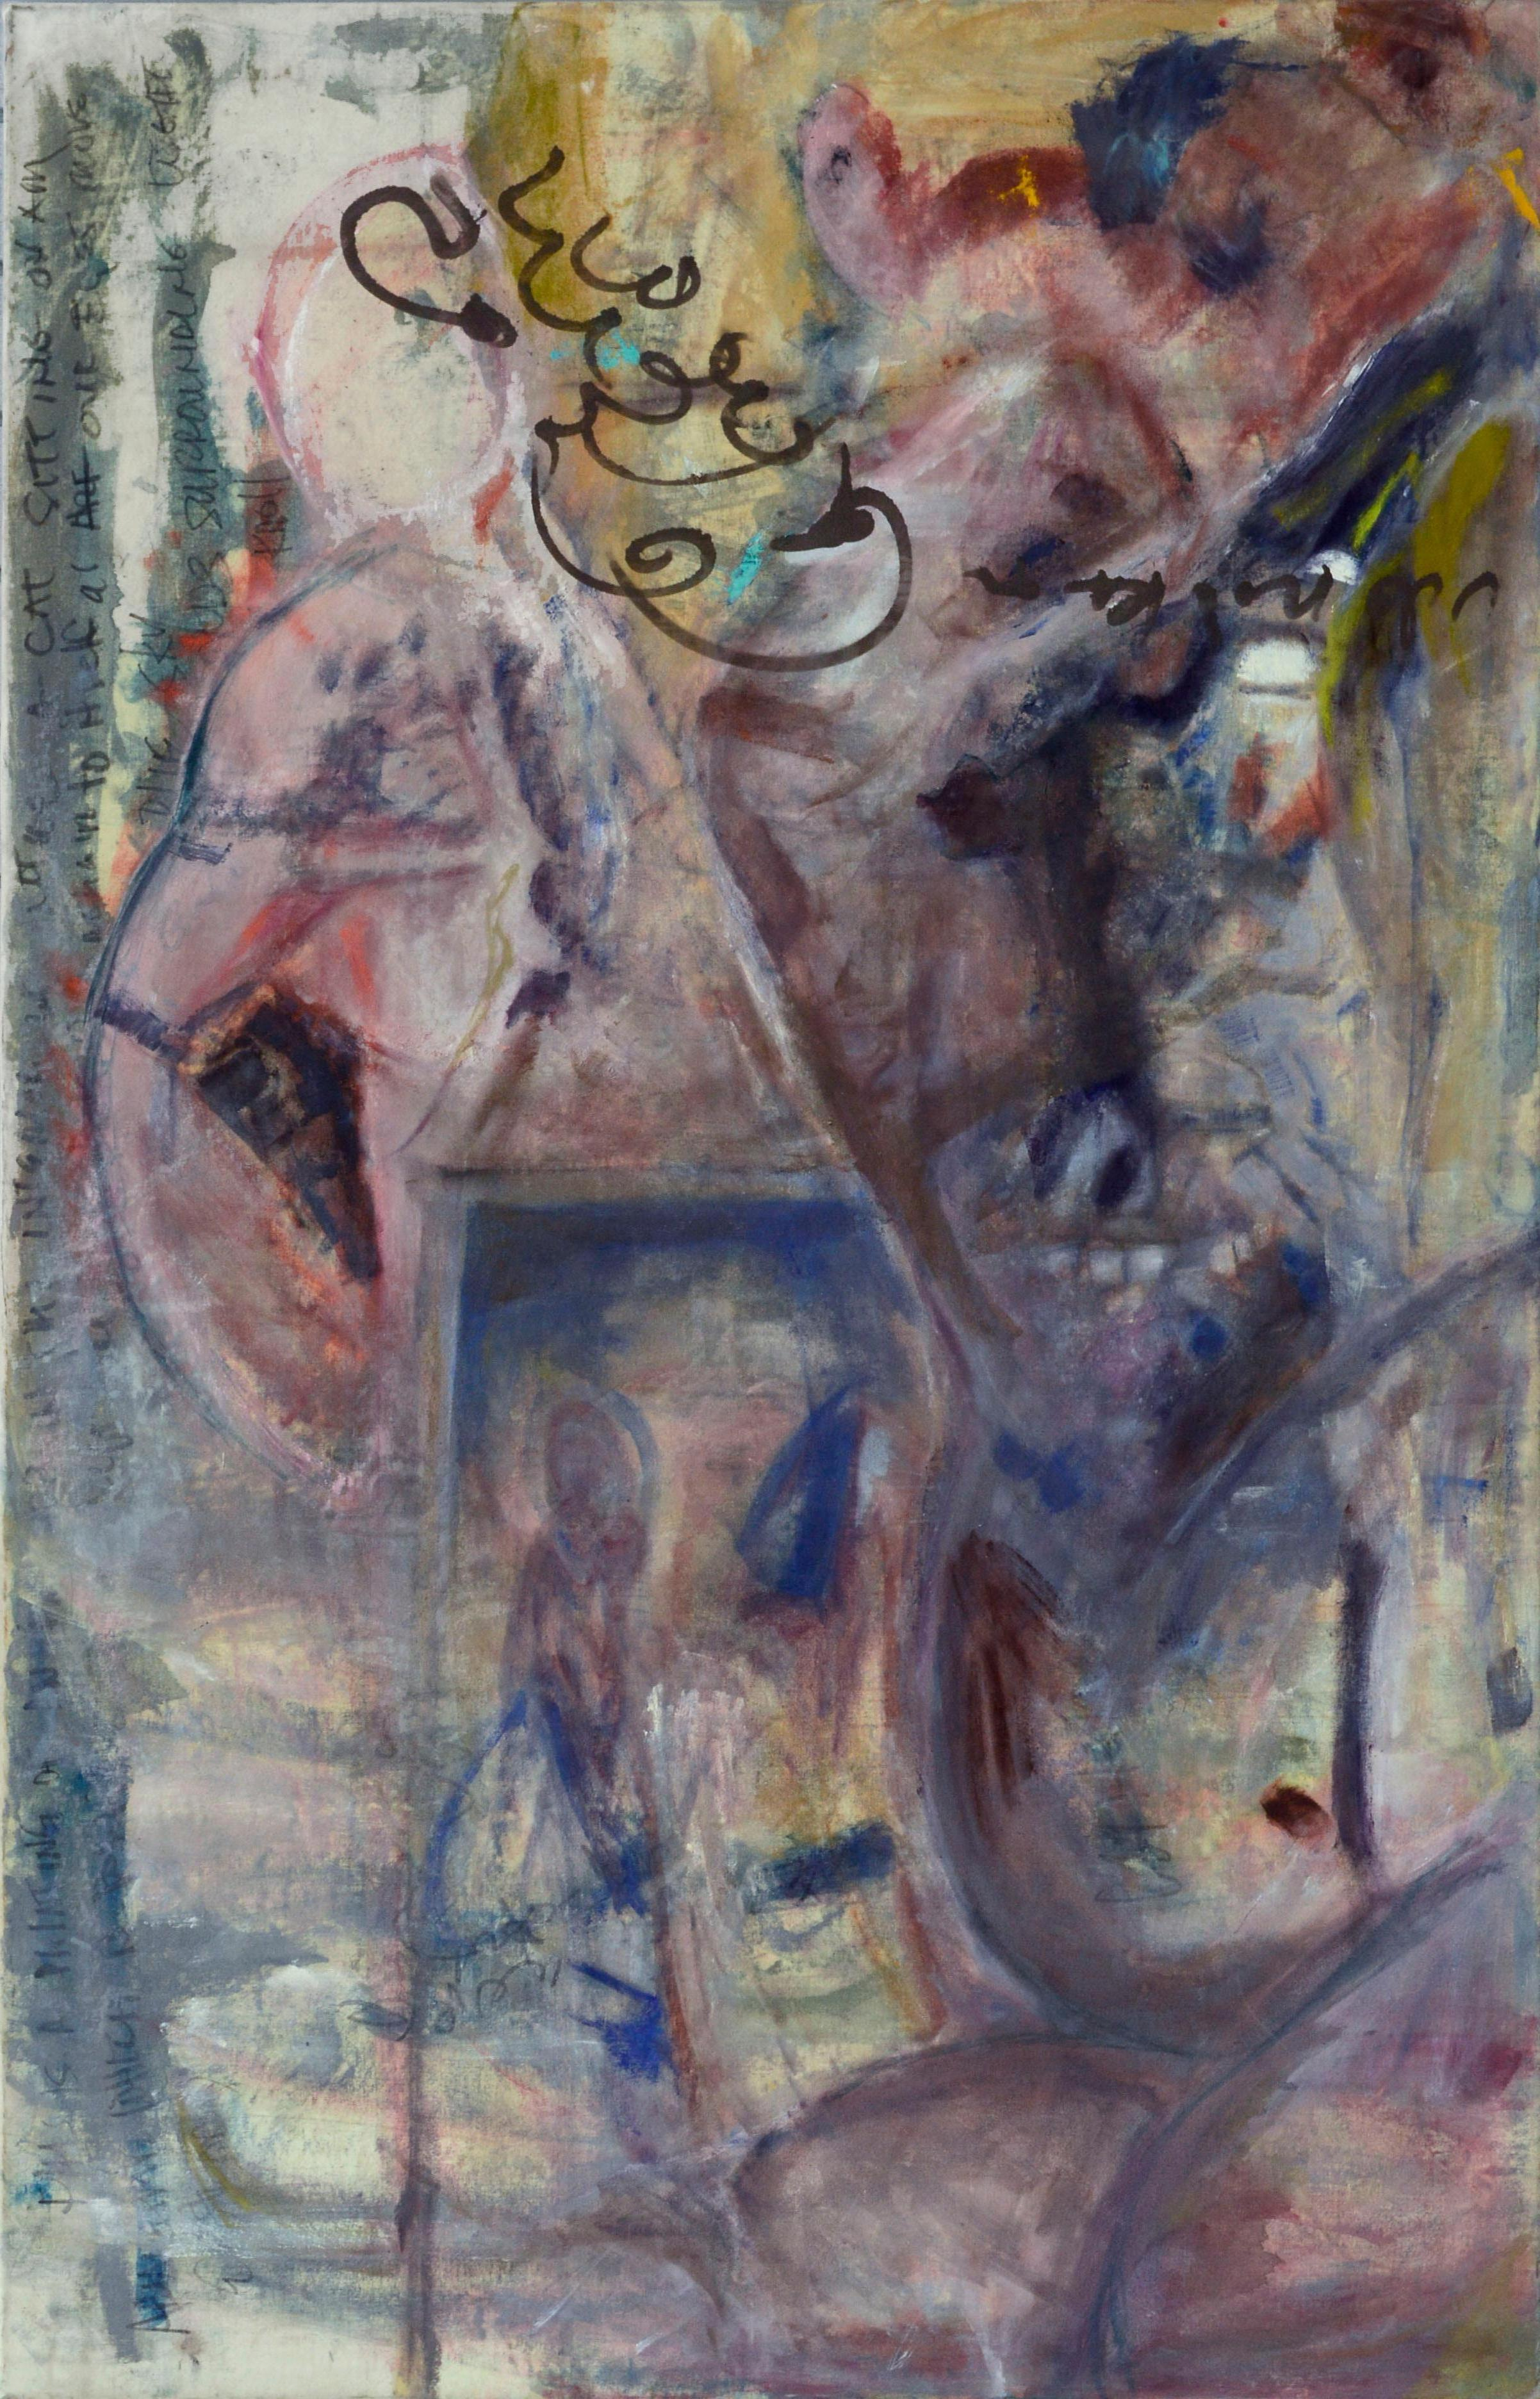 Cat Sitting on an Arm Chair A Double Sided Figurative Abstract